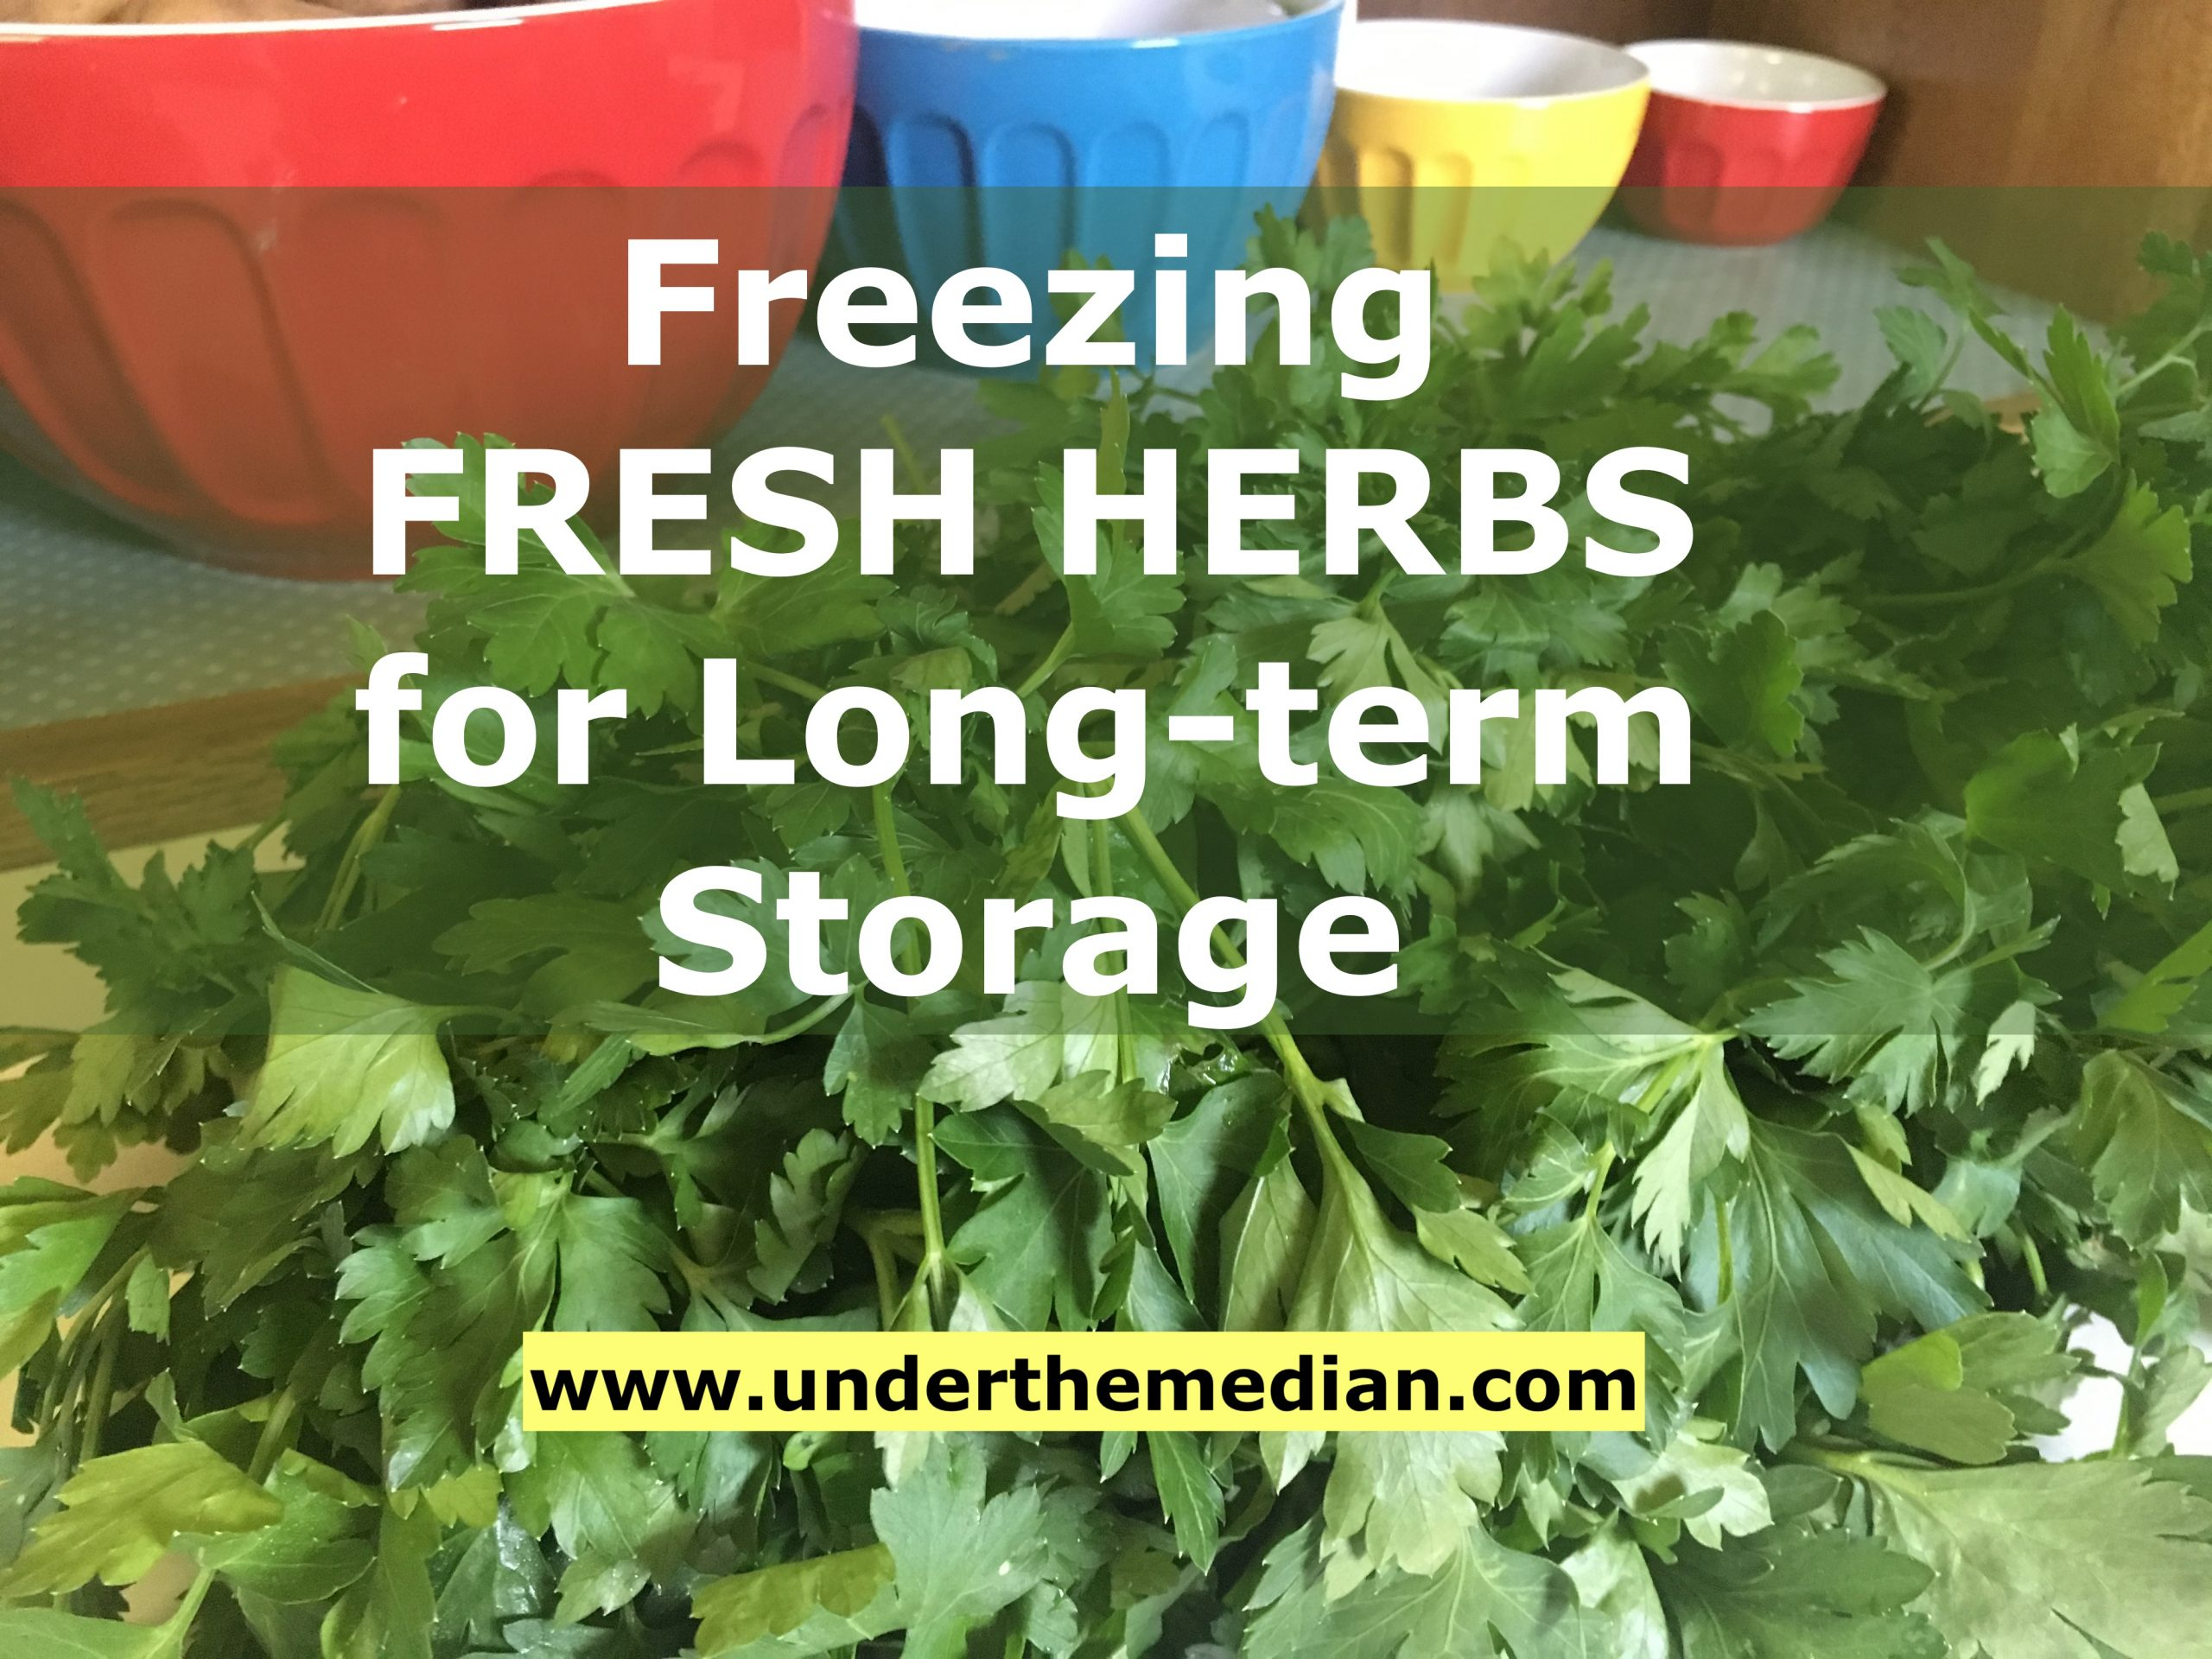 Freezing Fresh Herbs for Long-term Storage